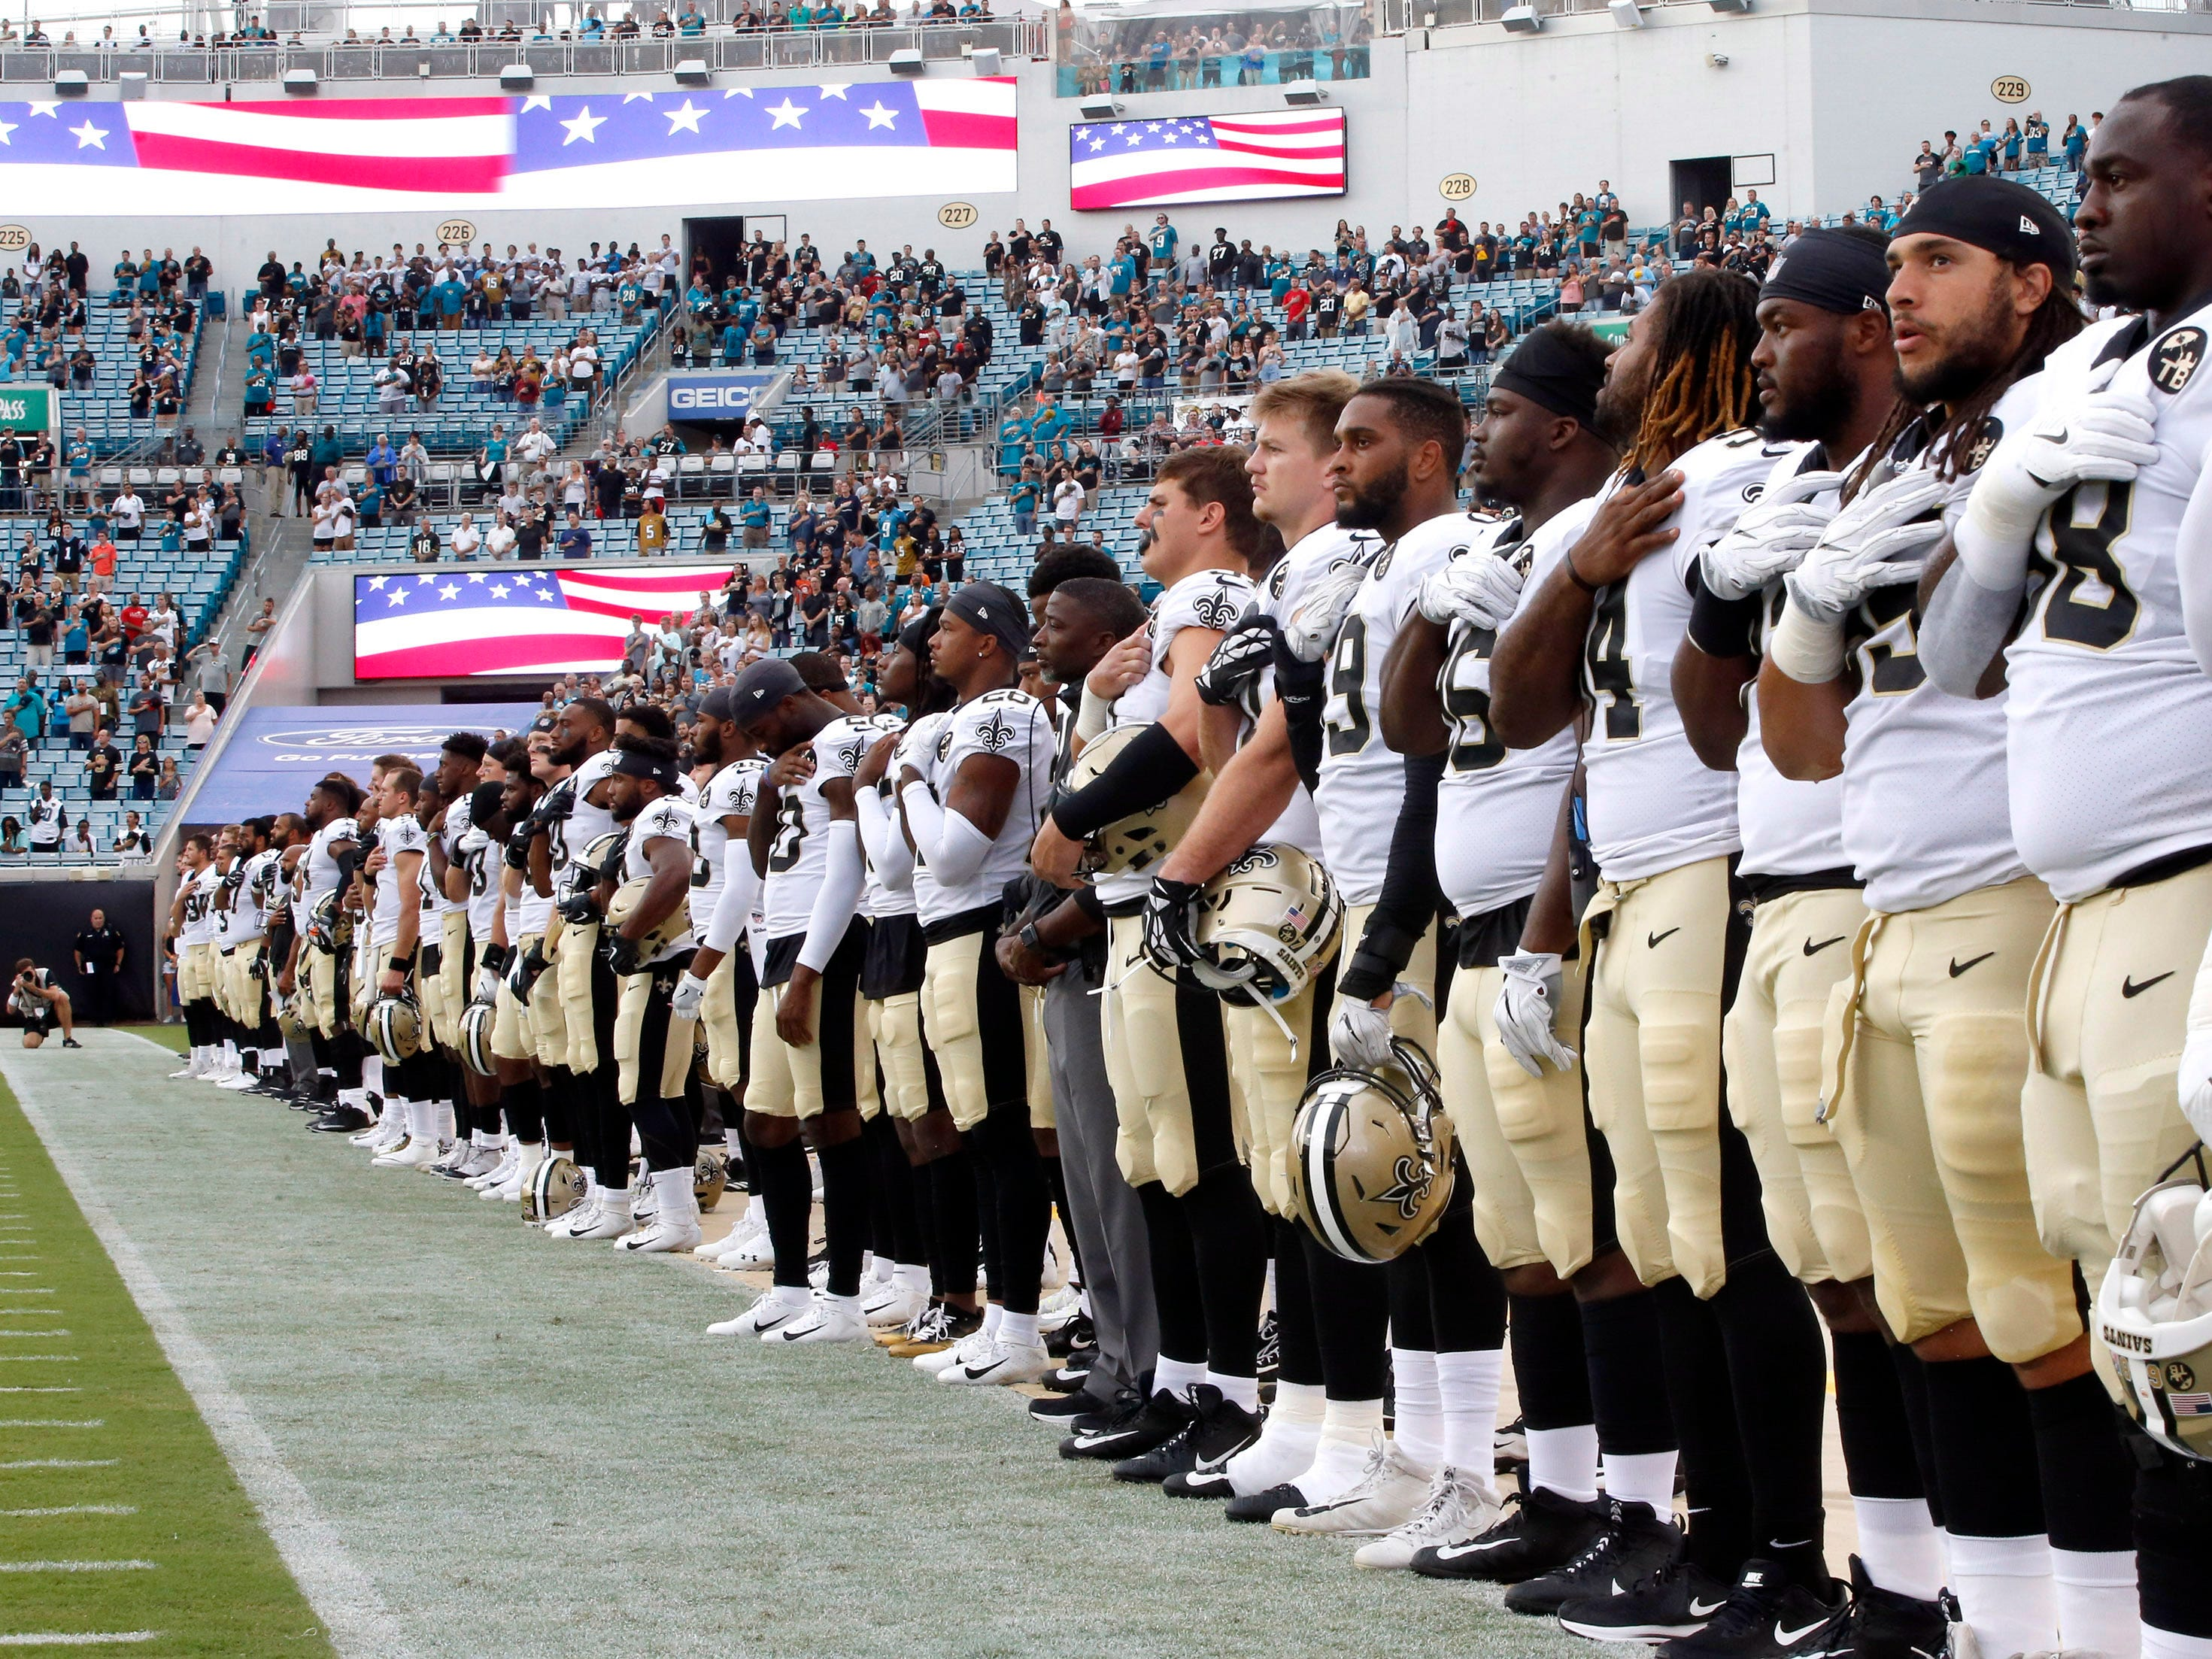 The New Orleans Saints players stand for the national anthem before a game against the Jacksonville Jaguars  at TIAA Bank Field.